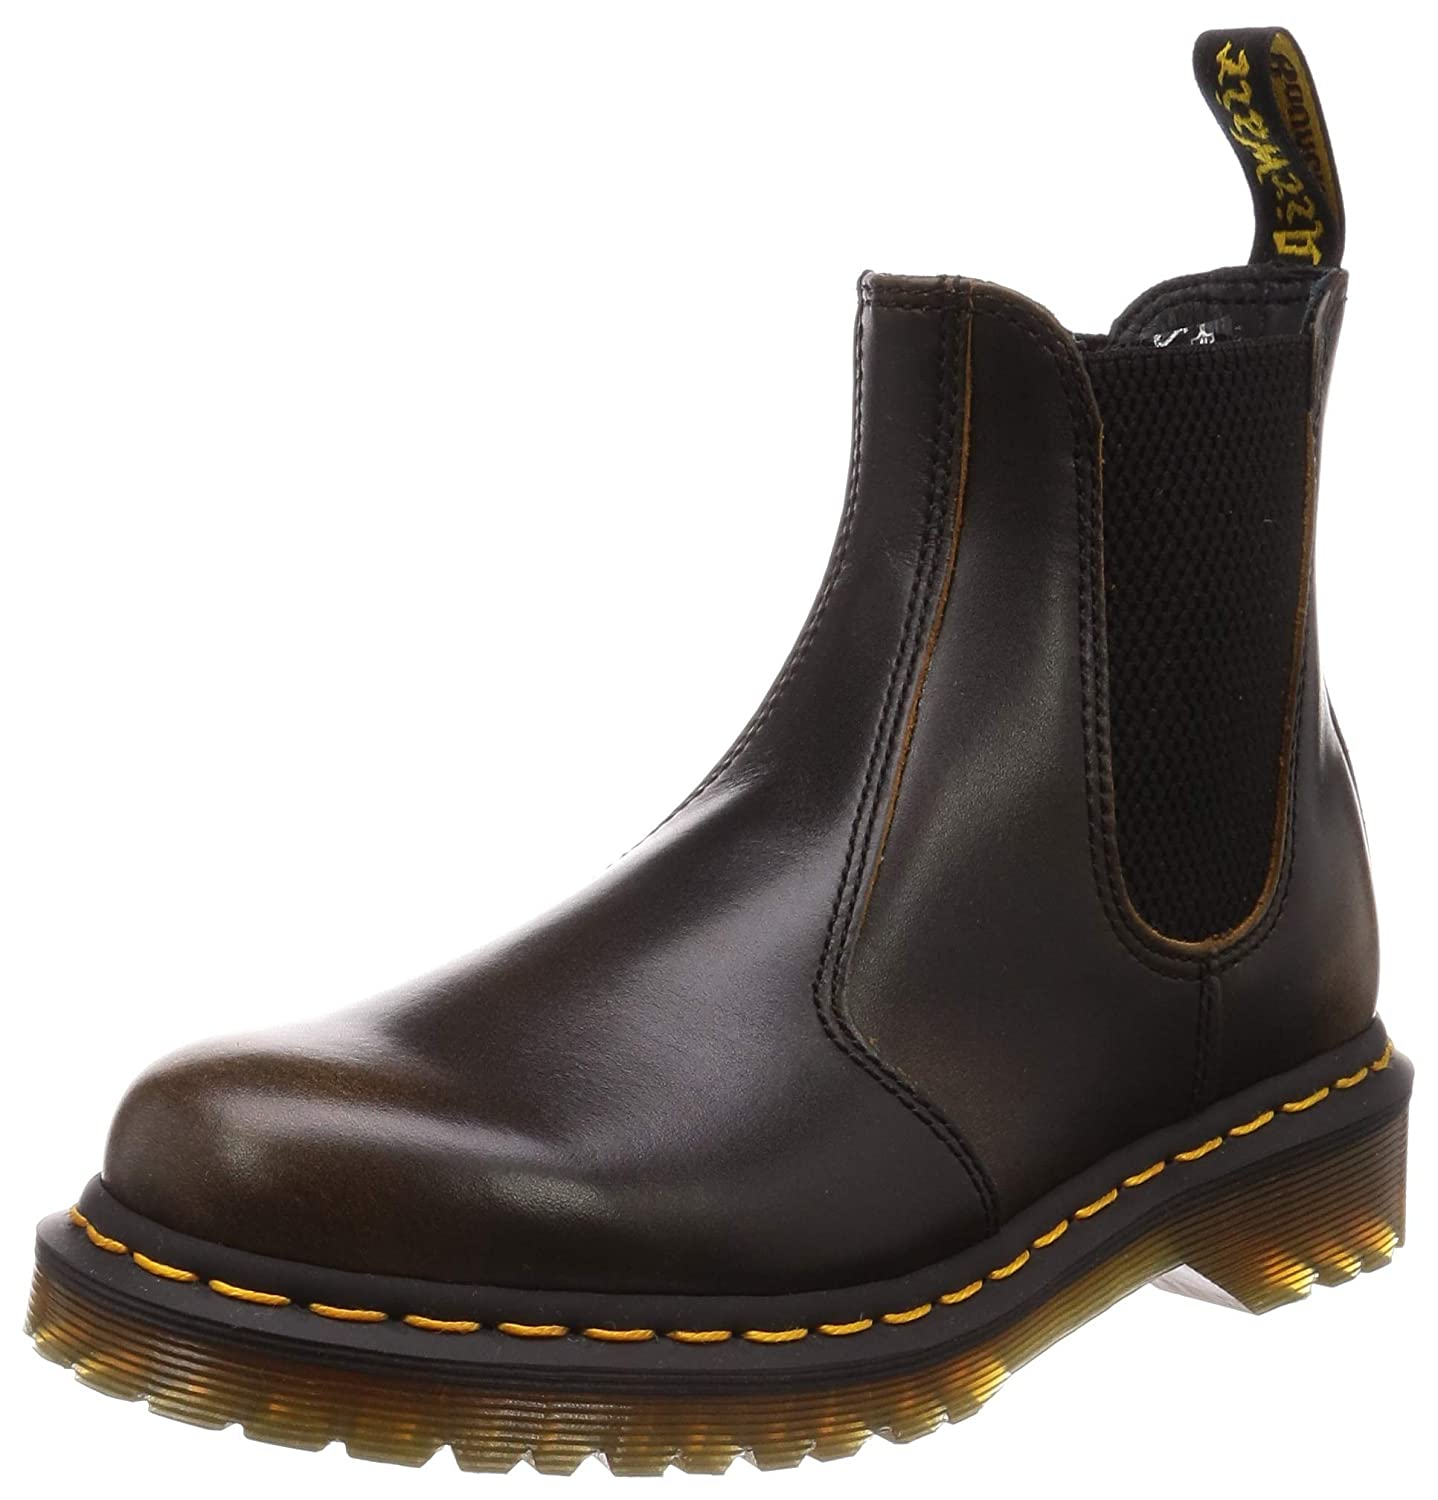 newest 45286 74841 Amazon.com   Dr. Martens 2976 Chelsea Boot, Black Smooth   Boots